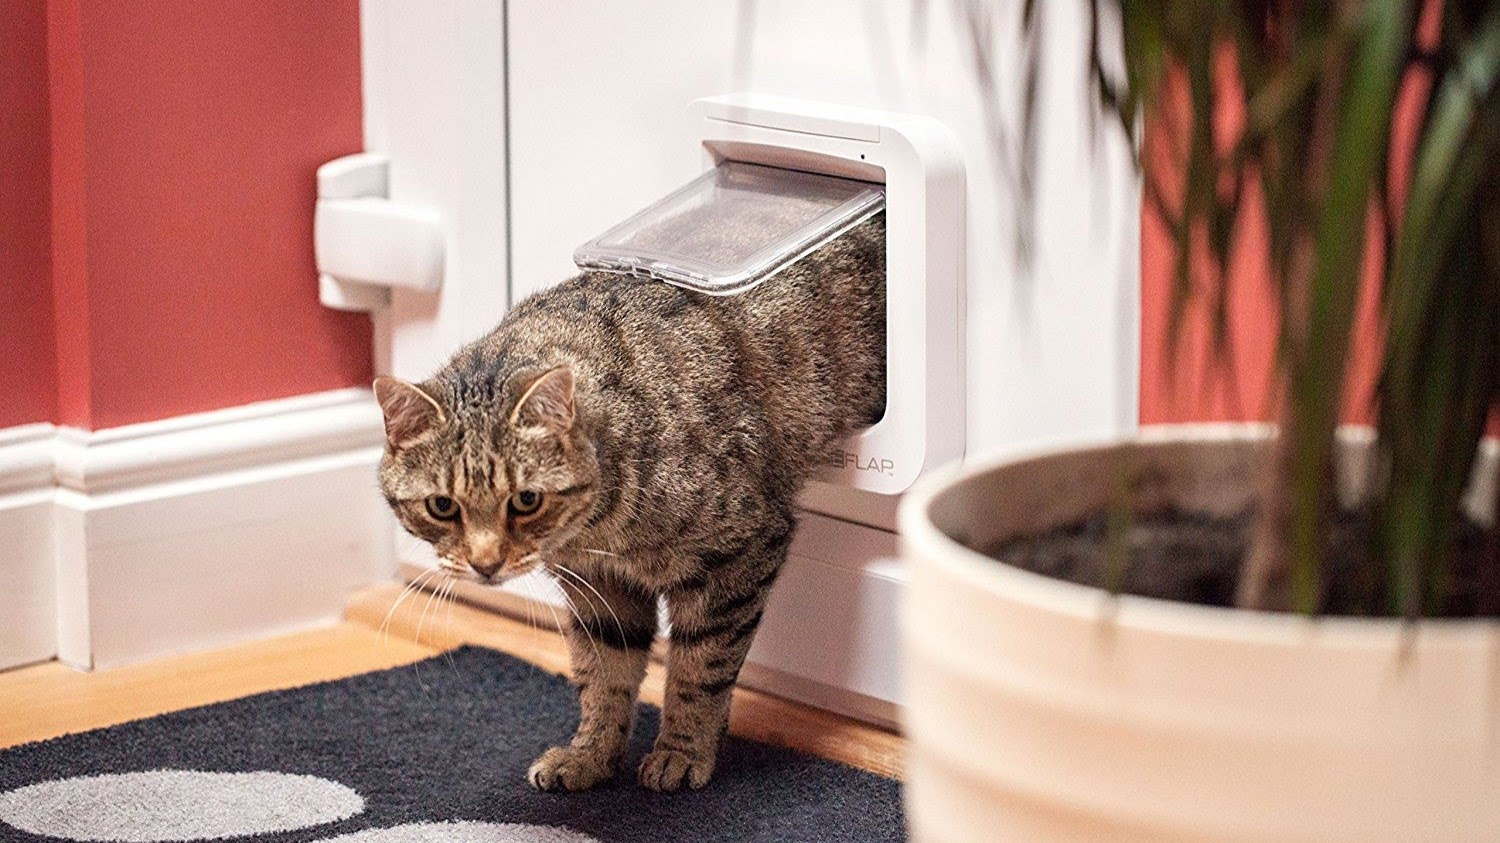 The Best Smart Cat Flaps Added Security For You And Your Furry